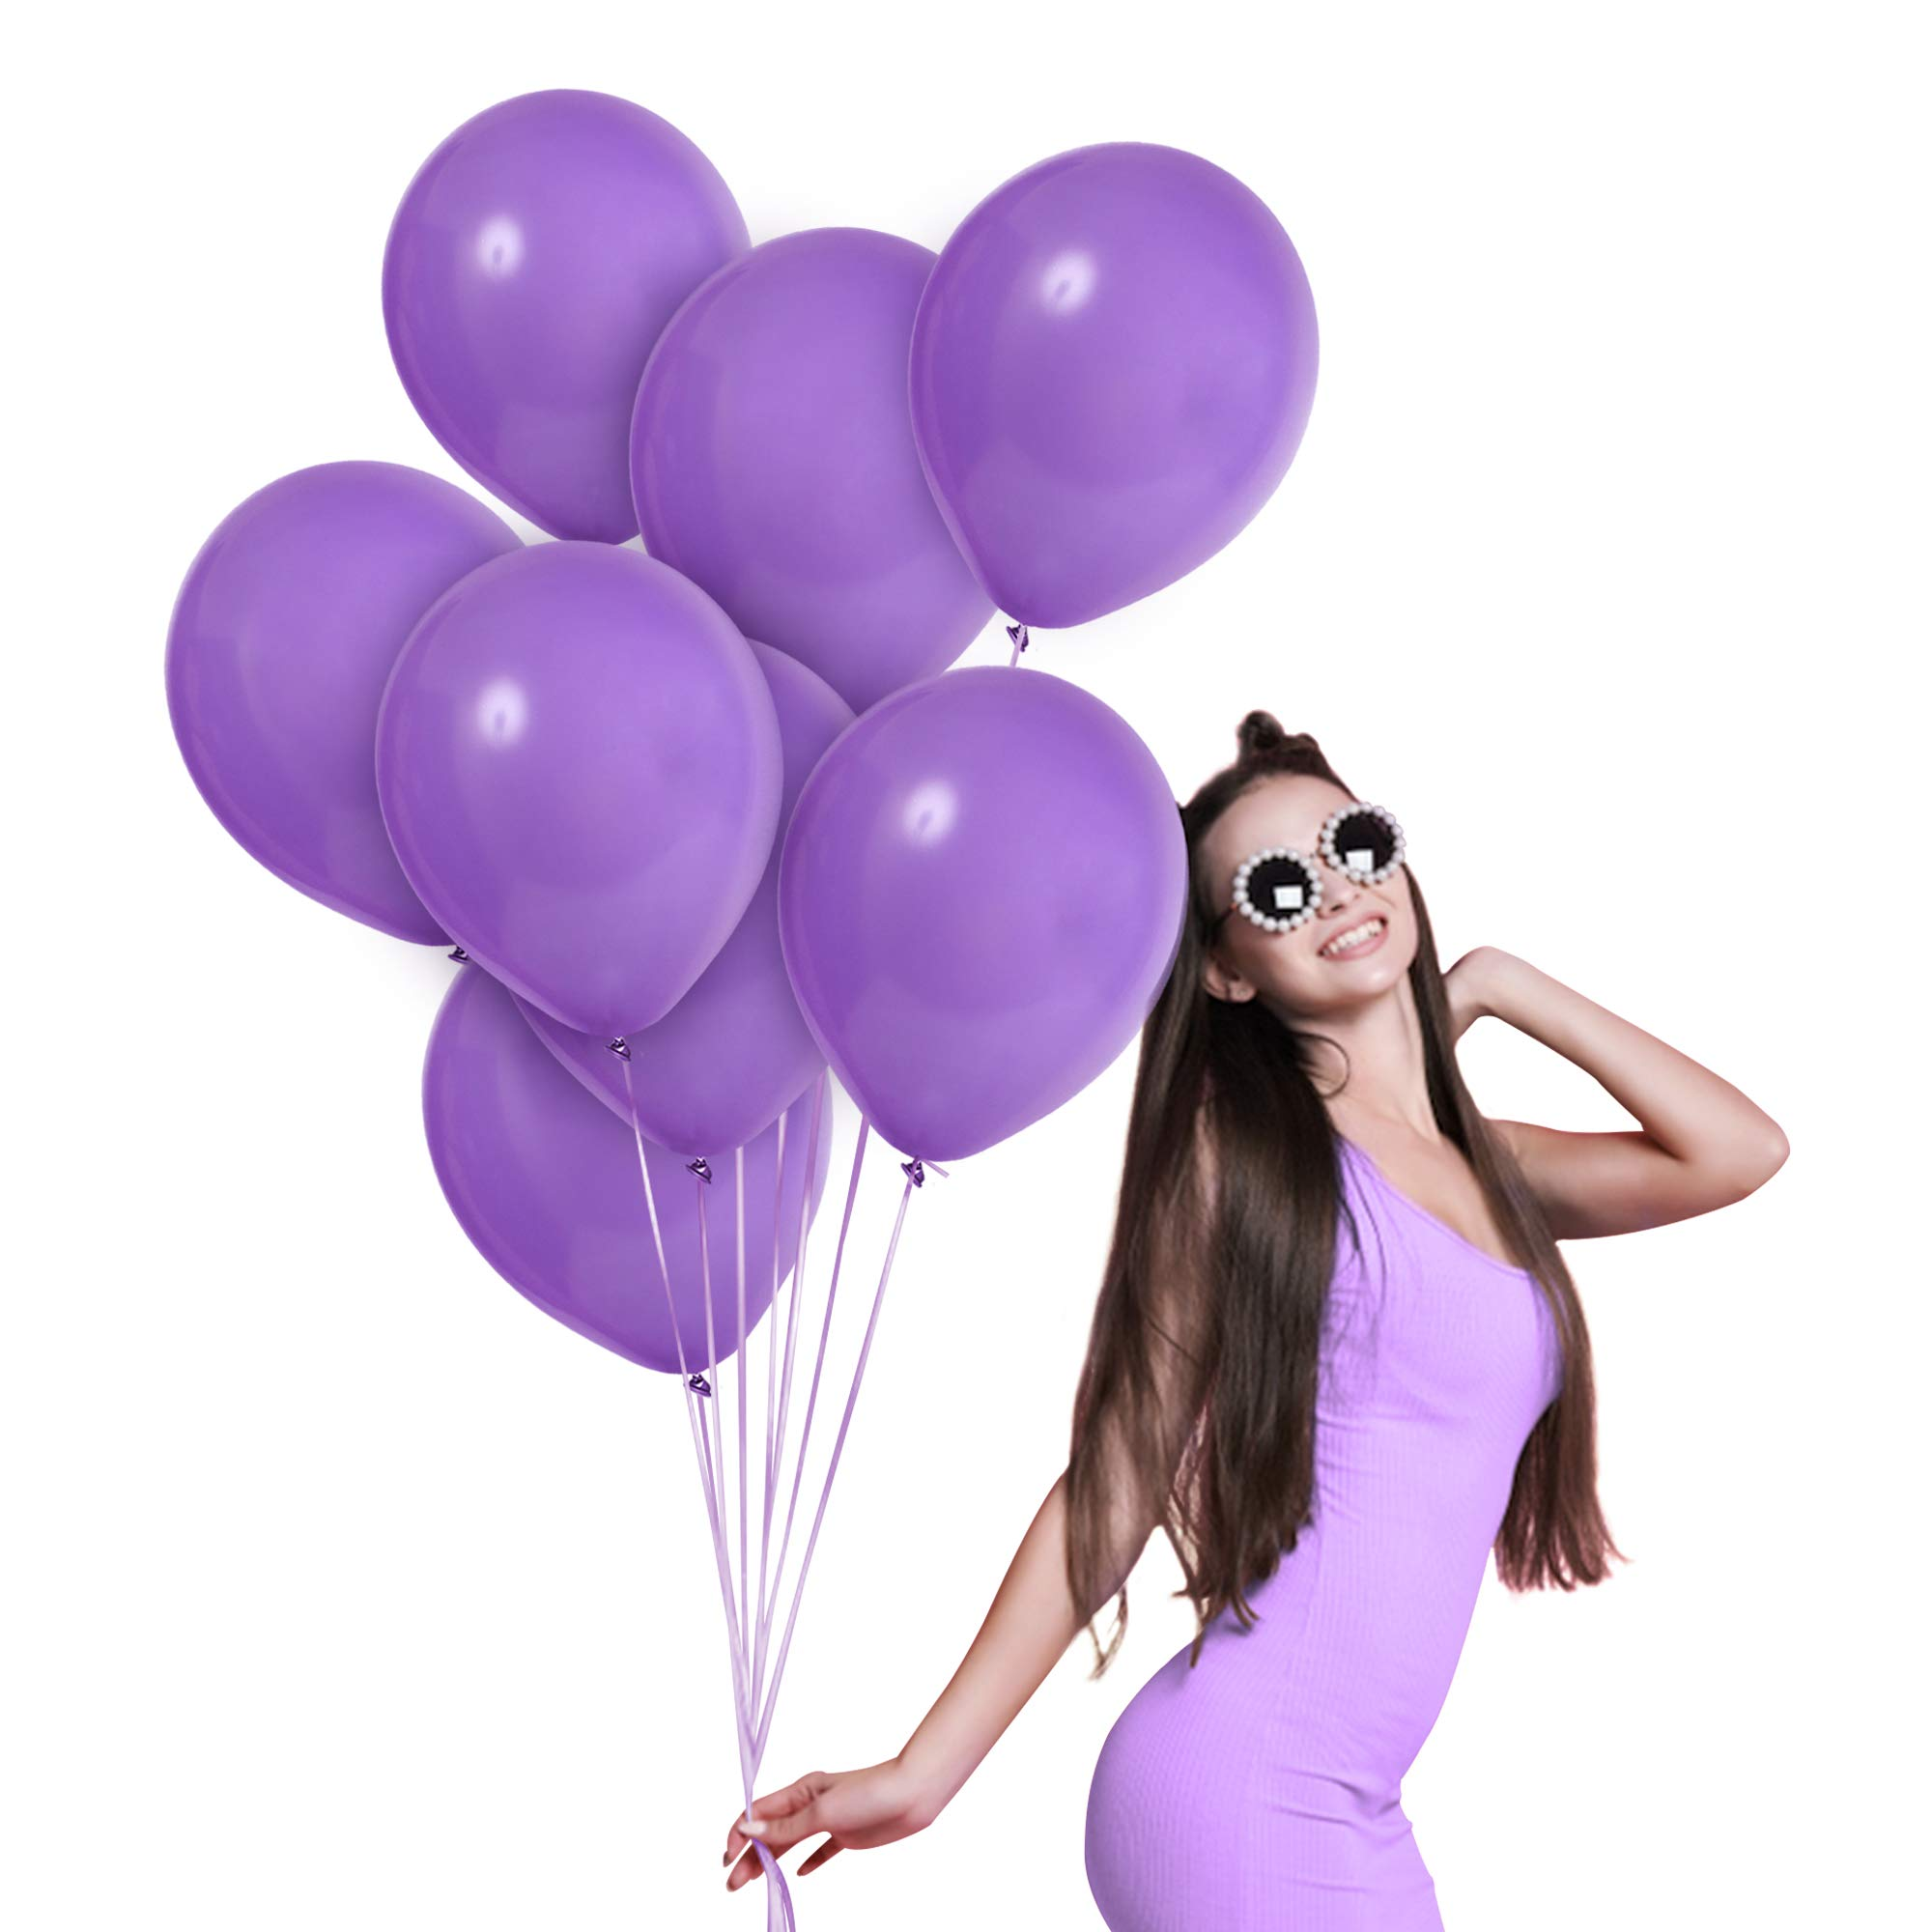 Matte Solid Lavender Lilac Balloons Pack of 72 Thick Opaque Light Purple Latex 12 Inch for Engagement Wedding Bridal Shower Bachelorette Birthday Graduation Party Supplies